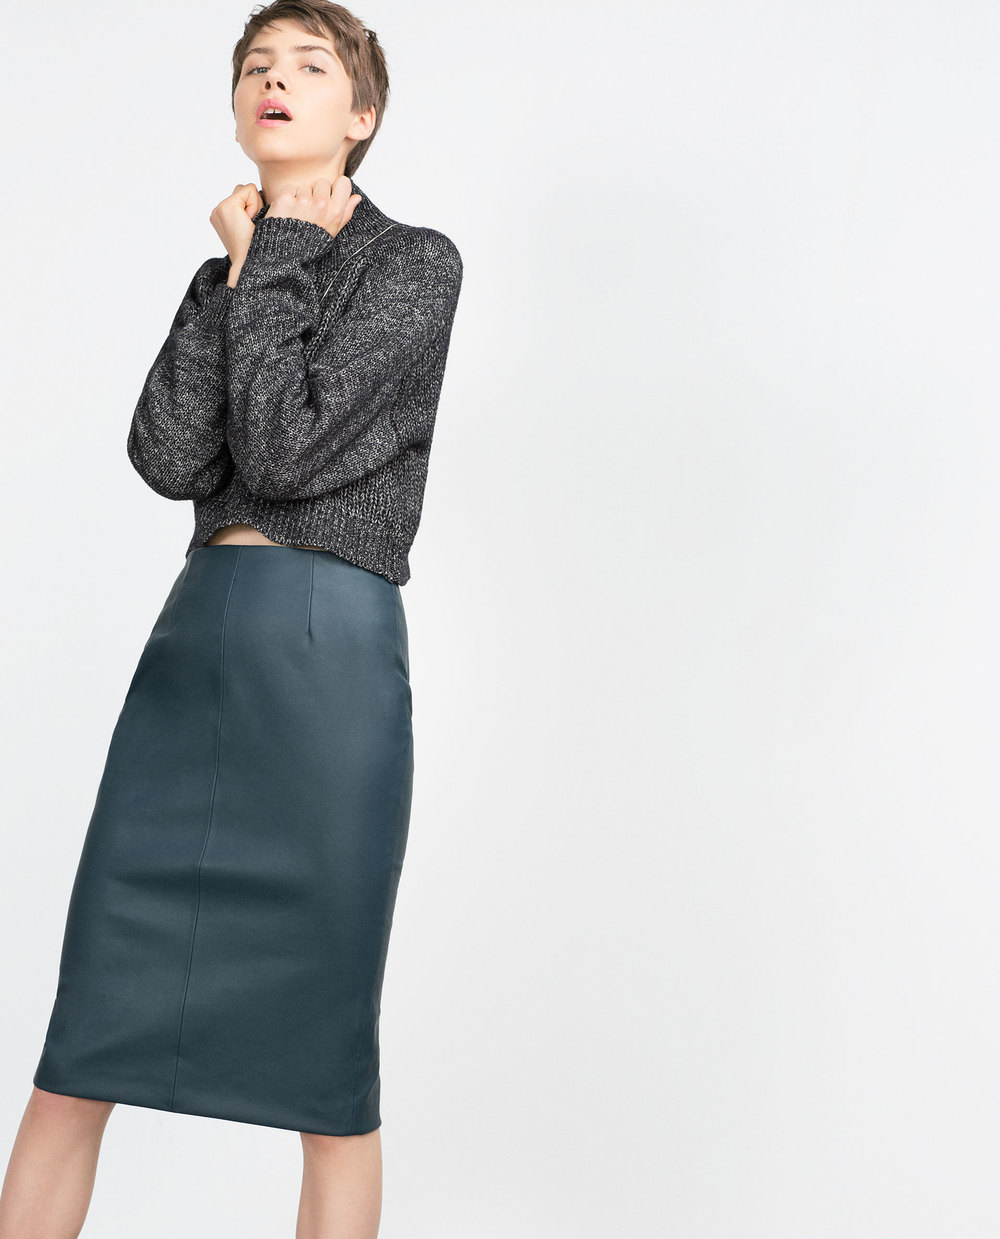 Tube Skirt. Available in additional colors. Zara. $39.